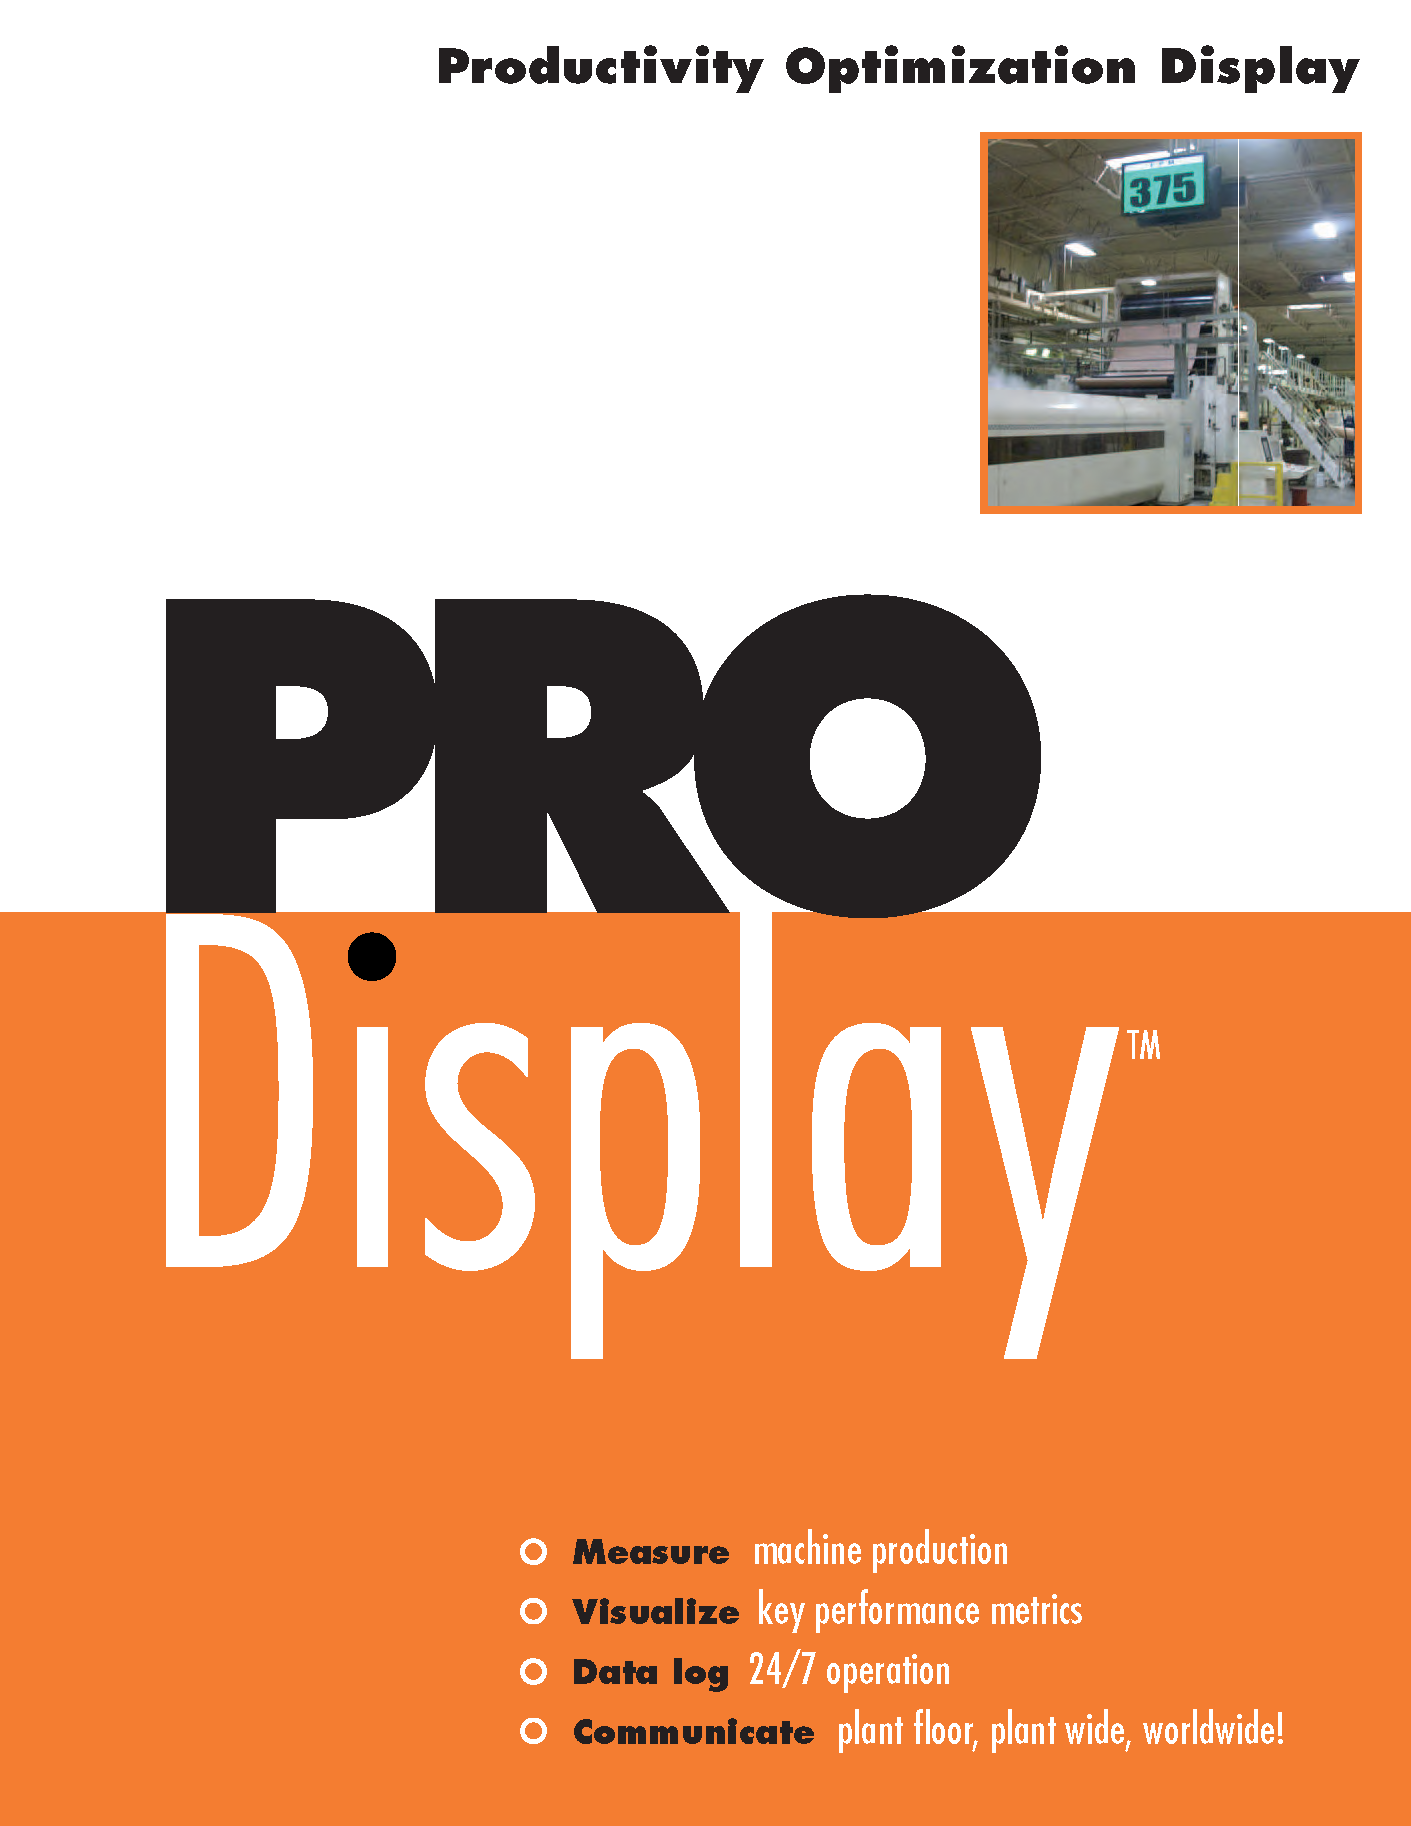 Learn more about the Productivity Optimization Display by Chicago Electric in their brochure.